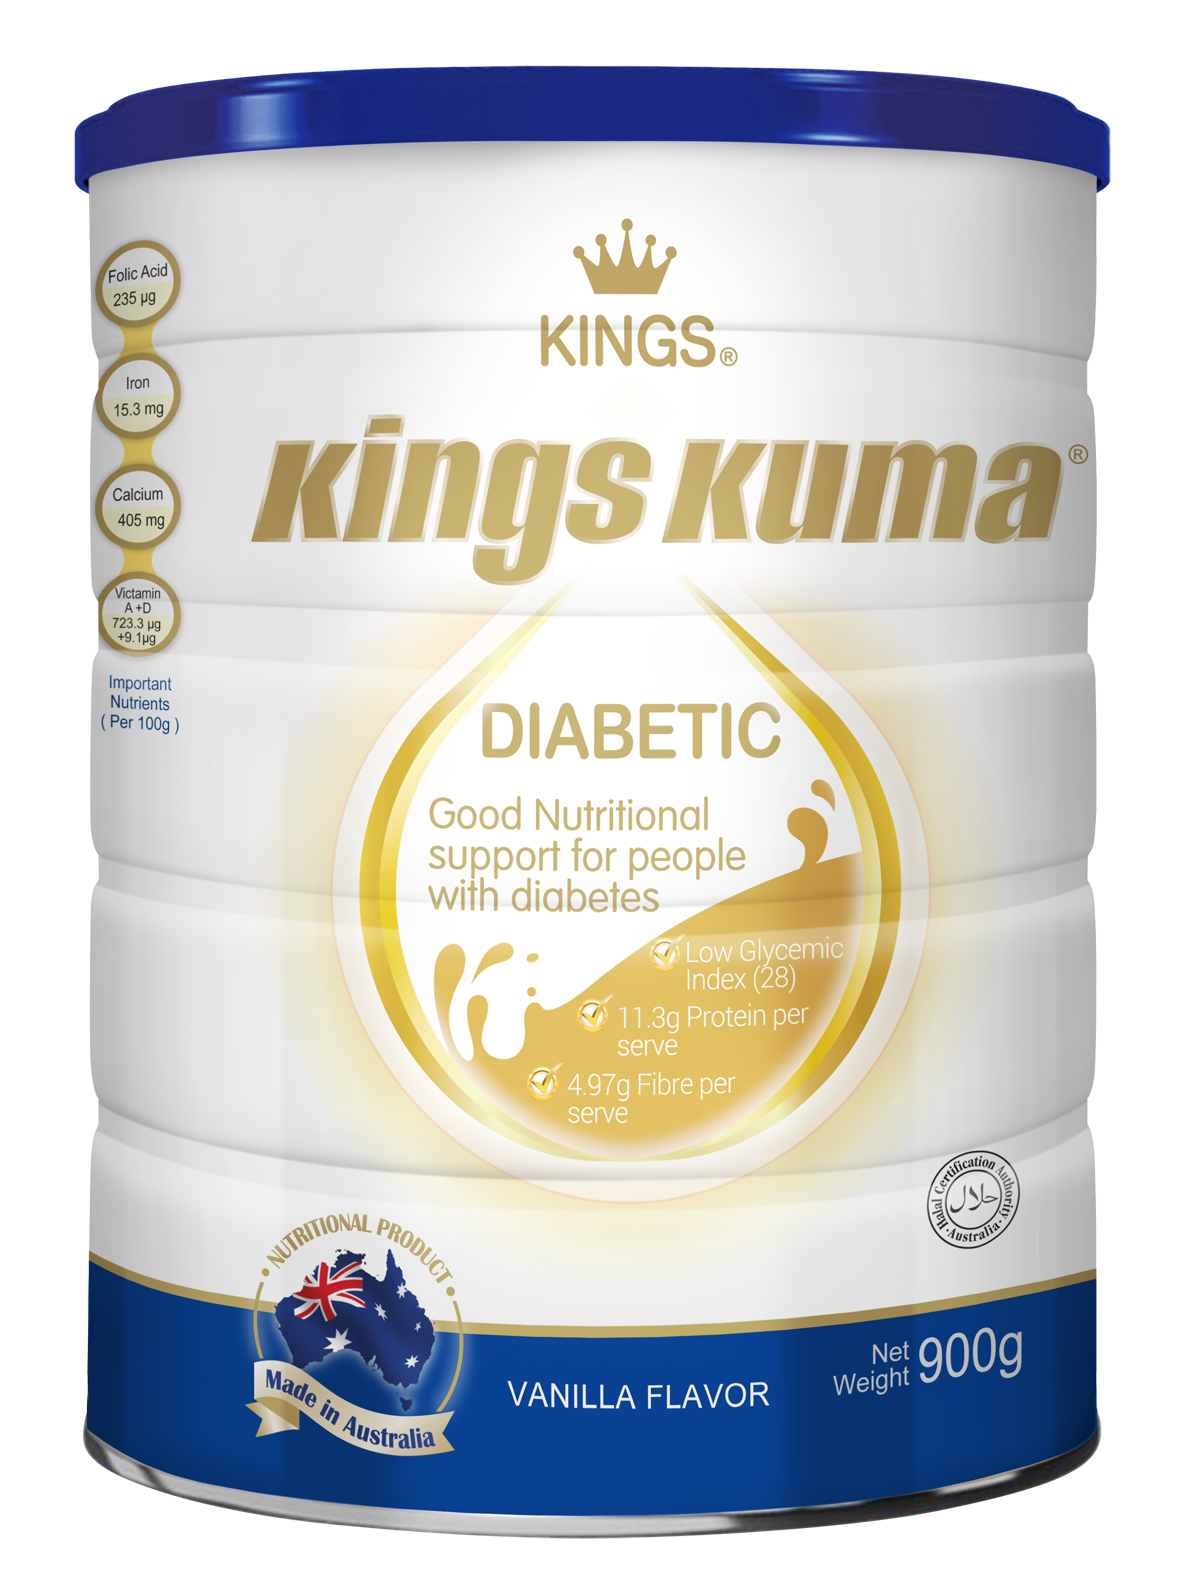 Kings kuma diabetic milk powder formula, supplement